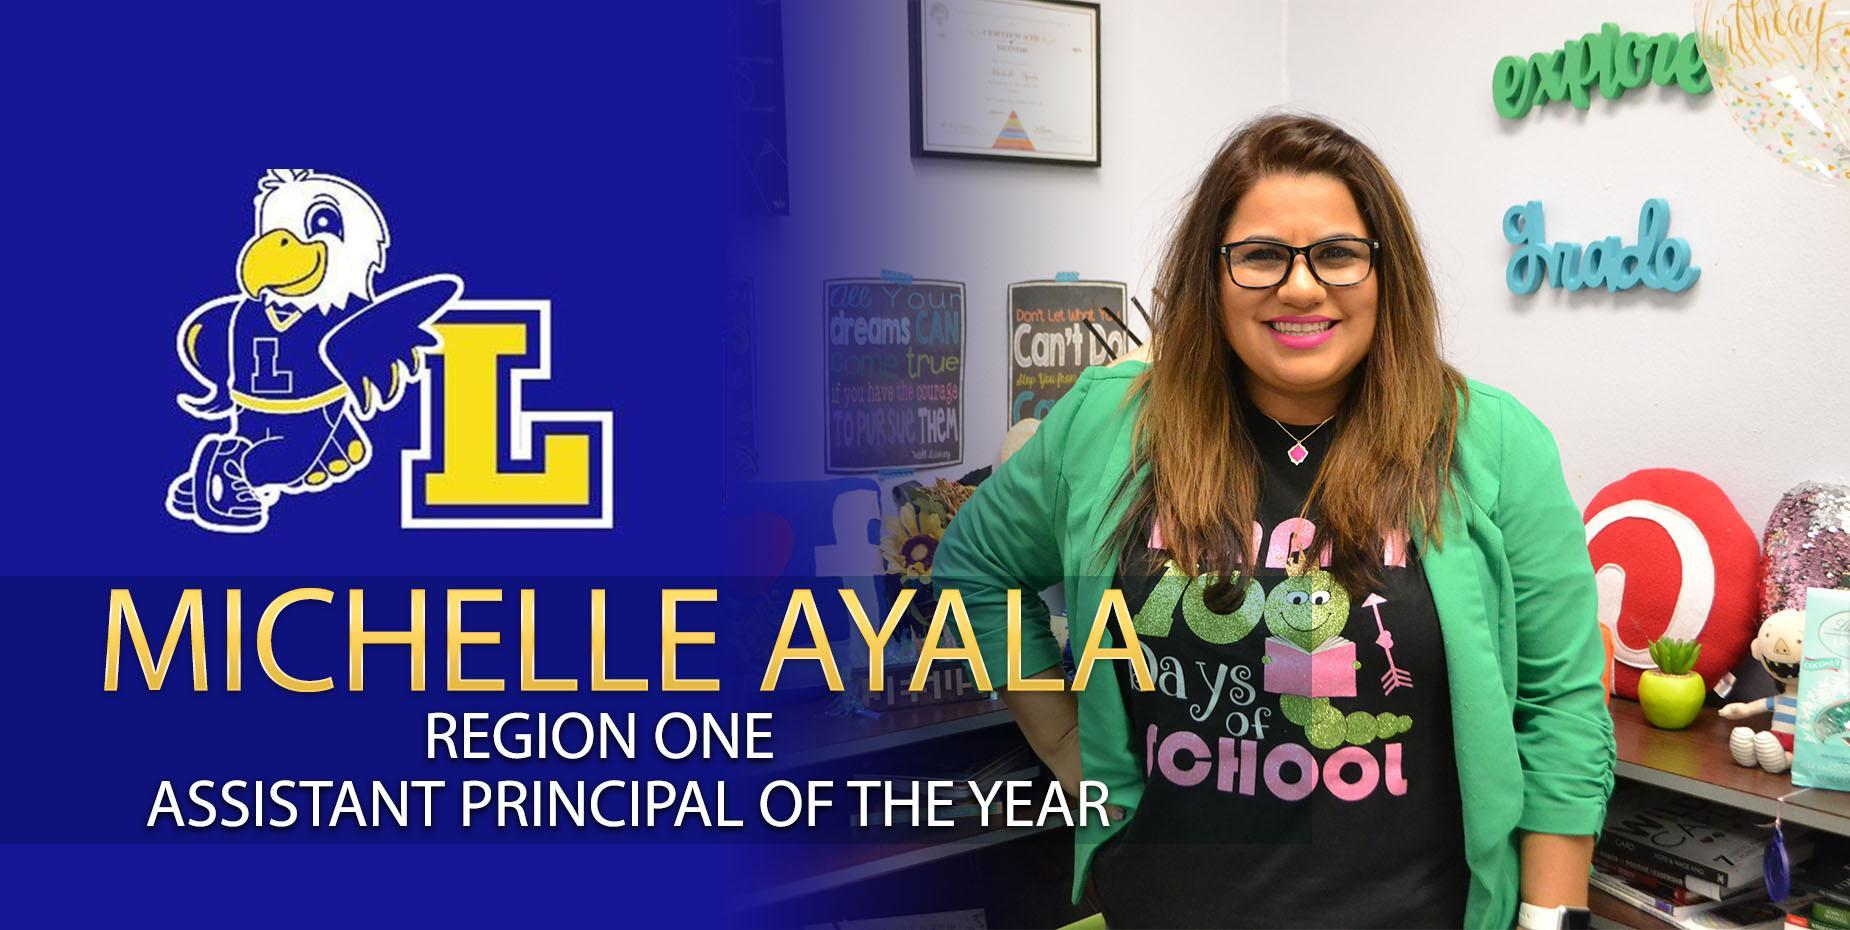 Michelle Ayala - Region One Assistant Principal of the Year